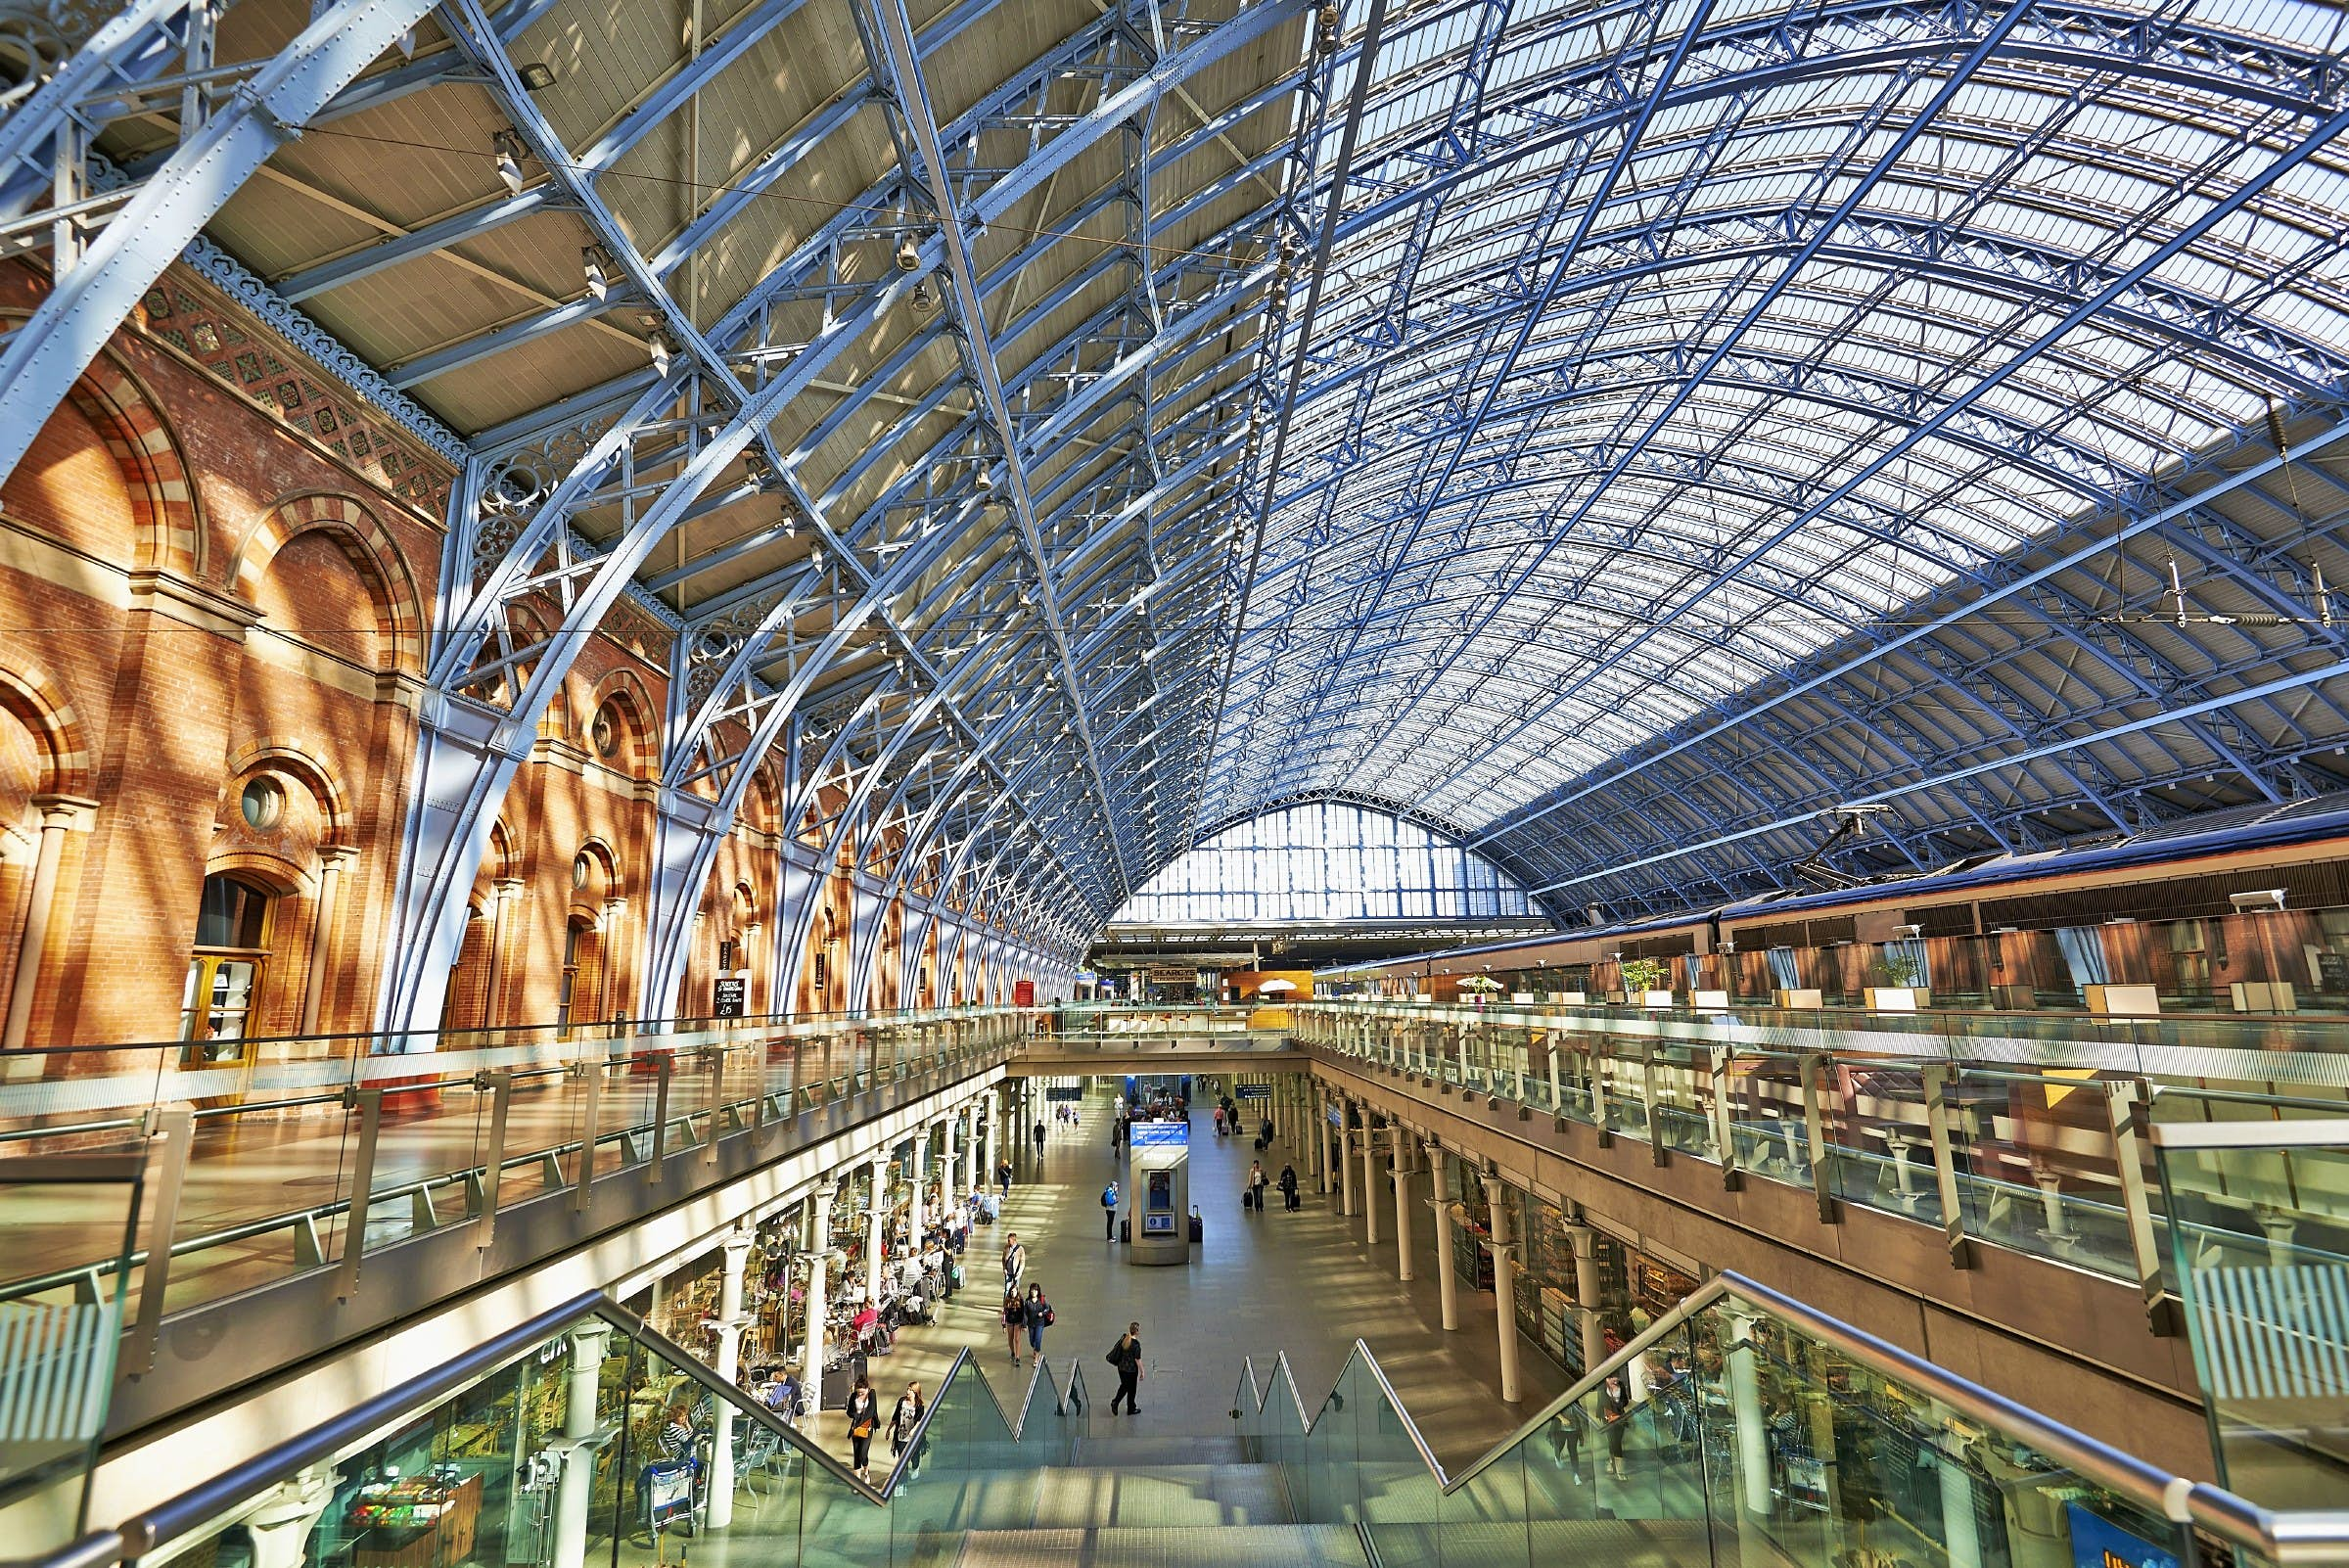 Inside St Pancras International train station in Kings Cross.